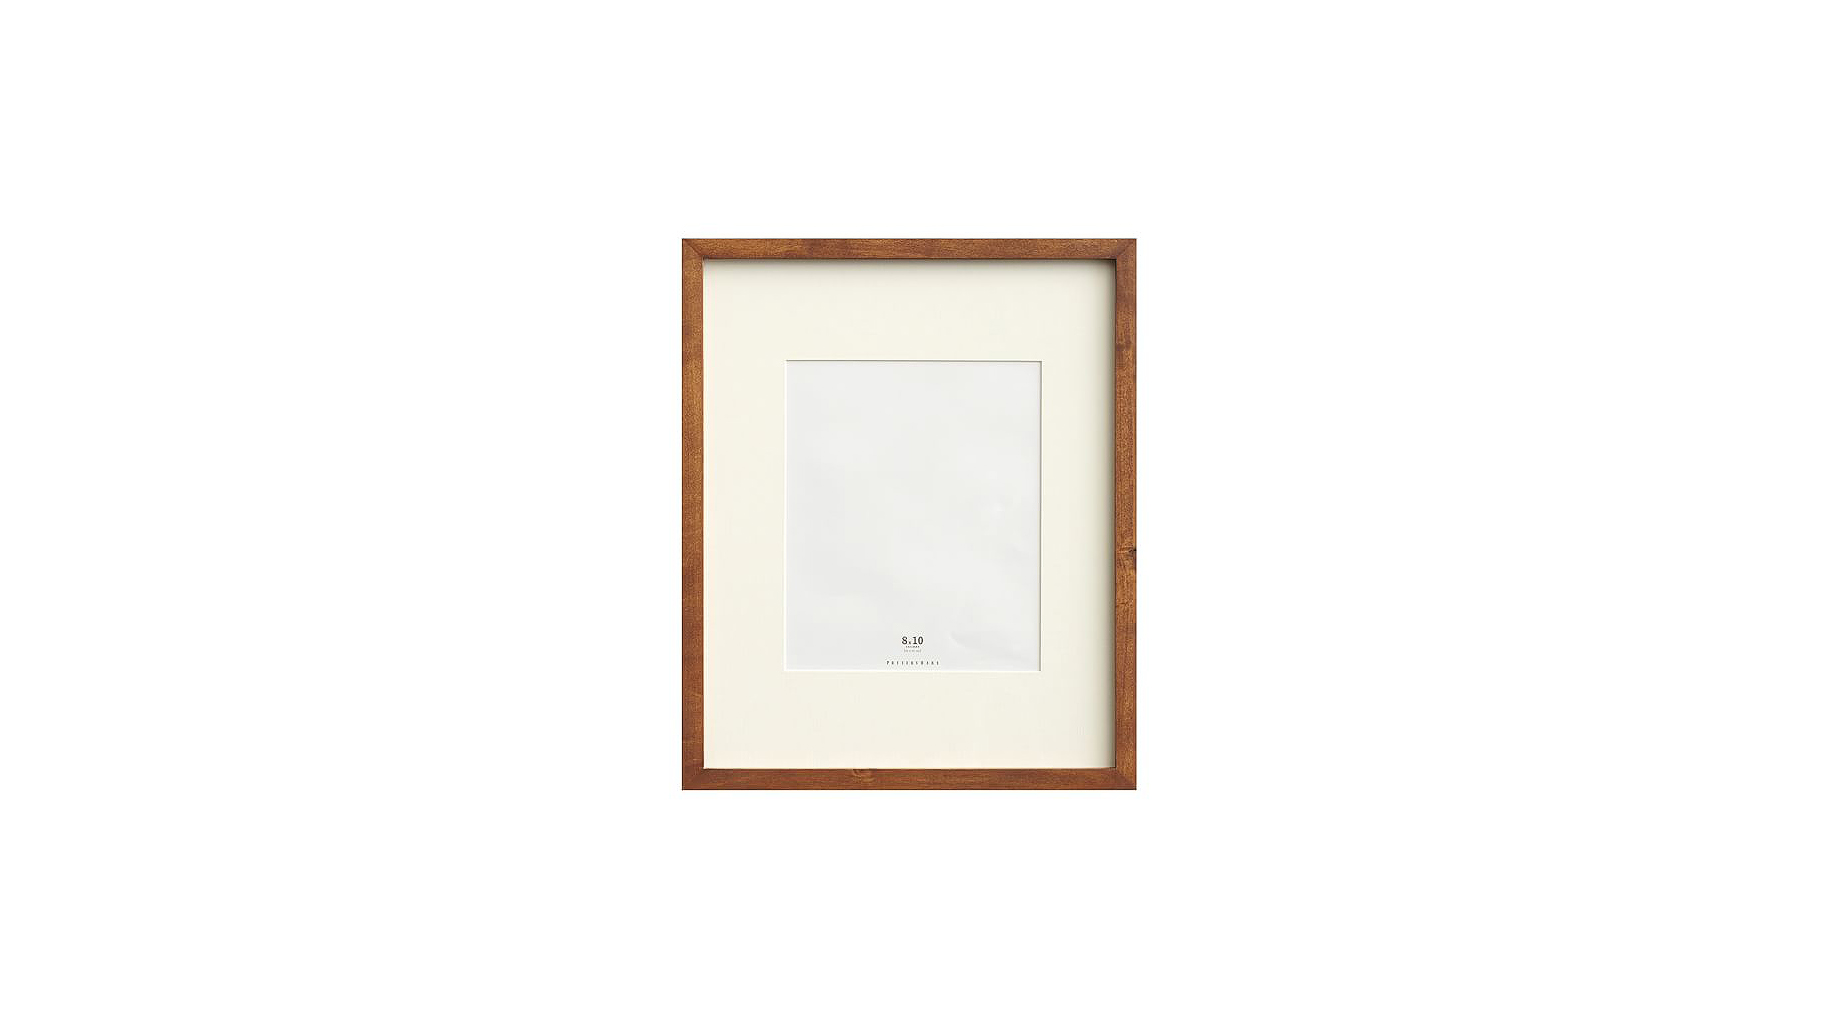 willow anniversary gift frame